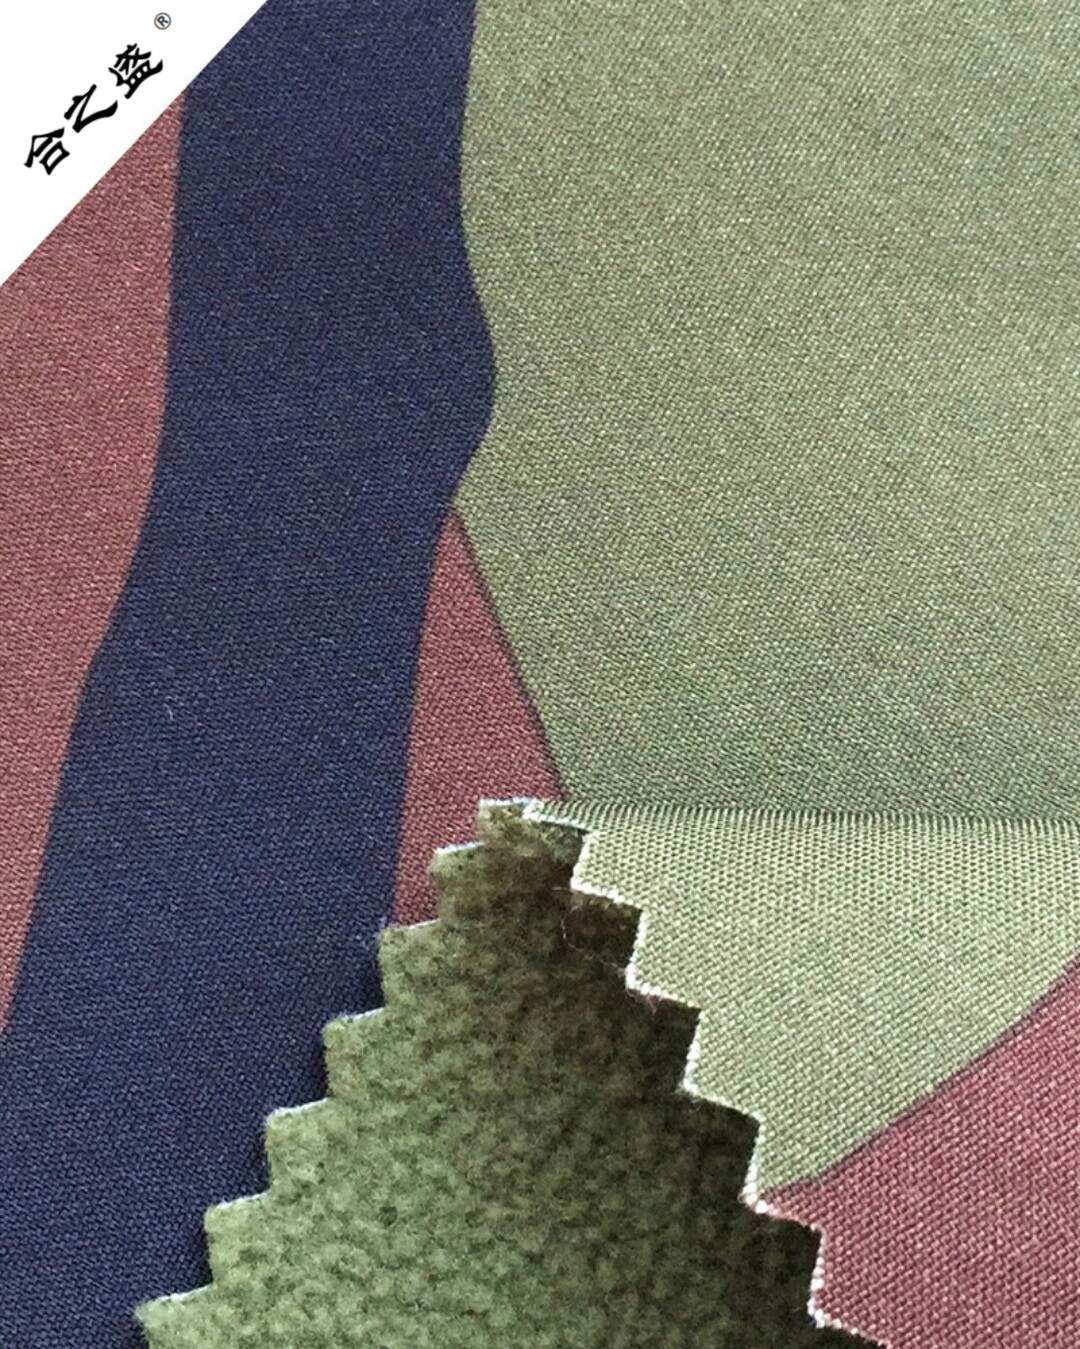 army camouflage printing fabric having high breathability function